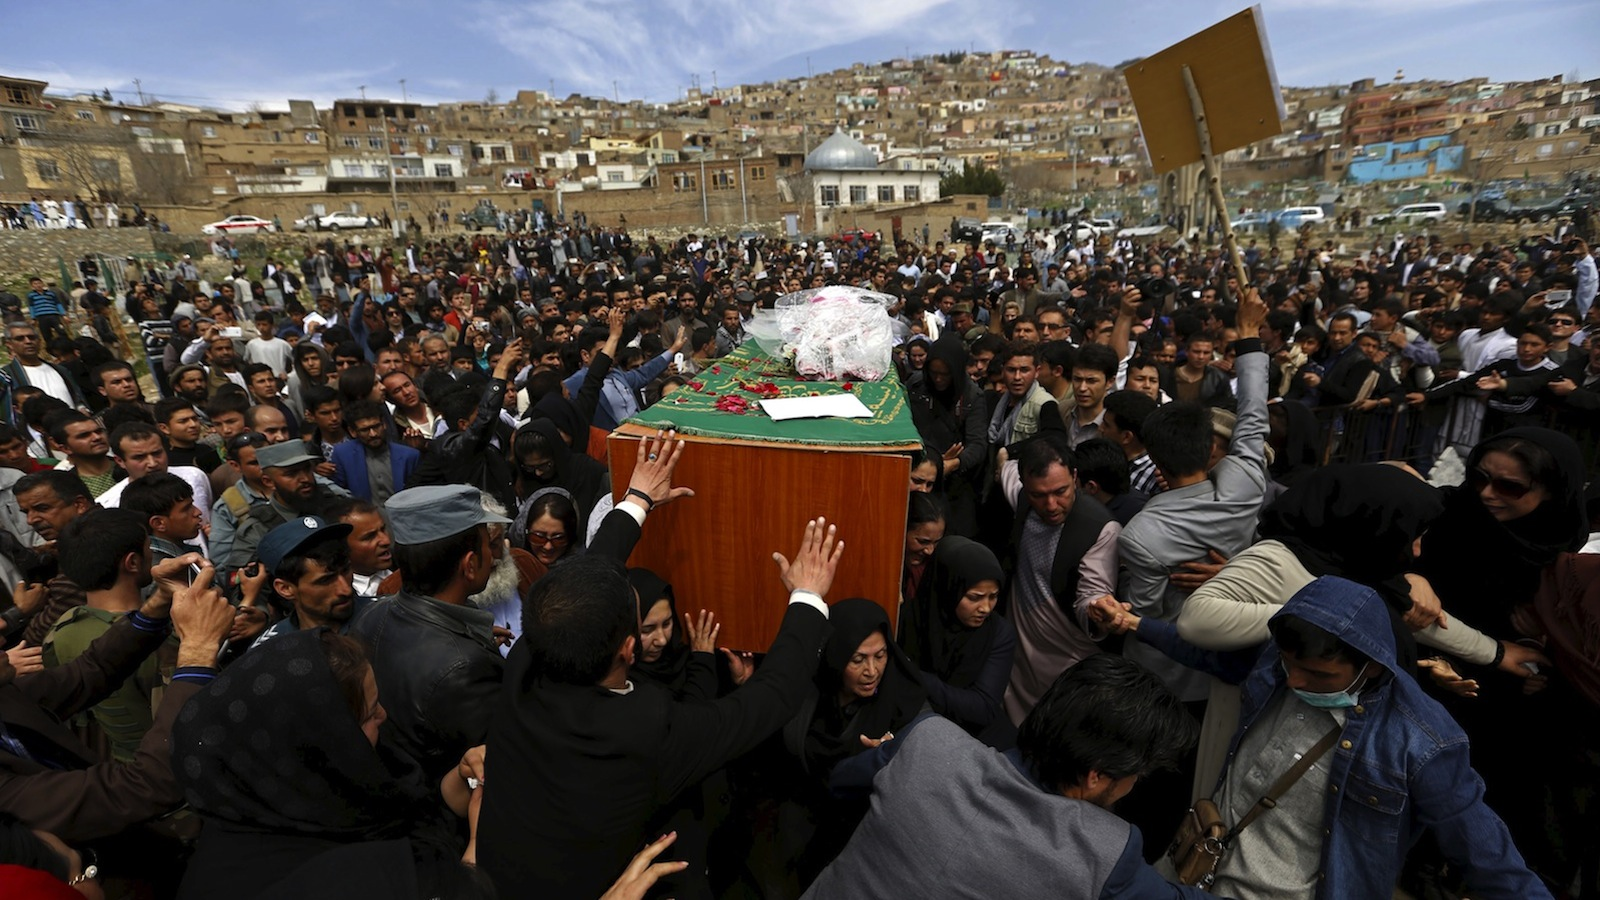 Afghan women's rights activists carry the coffin of Farkhunda, an Afghan woman who was beaten to death and set alight on fire on Thursday, during her burial ceremony in Kabul March 22, 2015. REUTERS/Mohammad Ismail